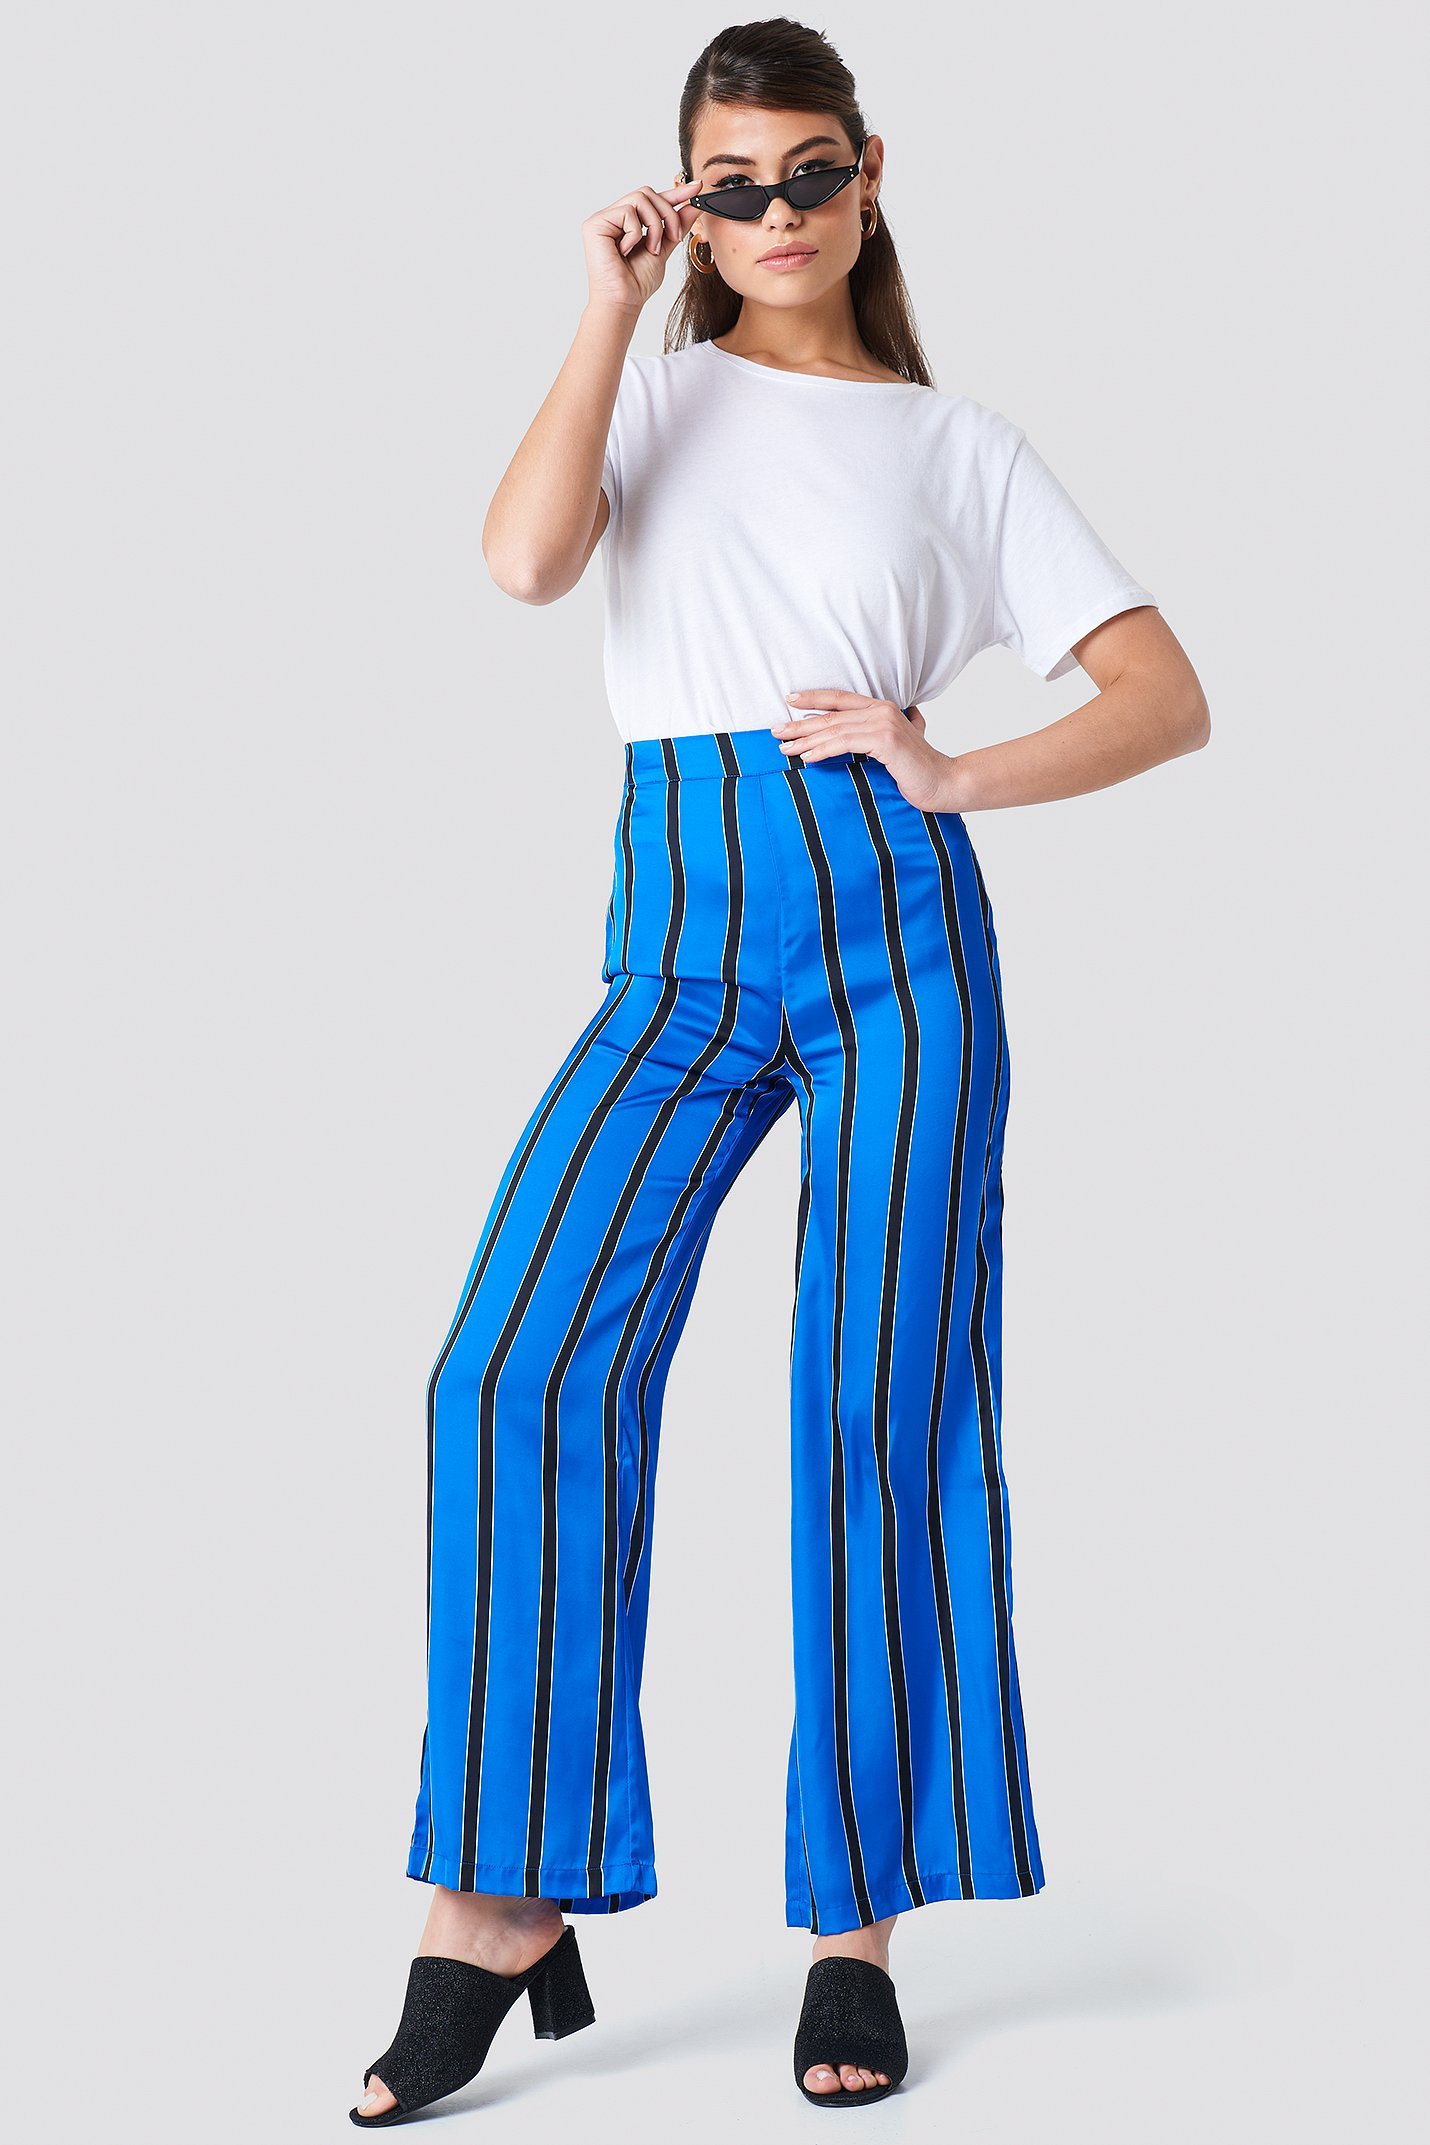 na-kd -  Striped High Waist Flared Pants - Blue